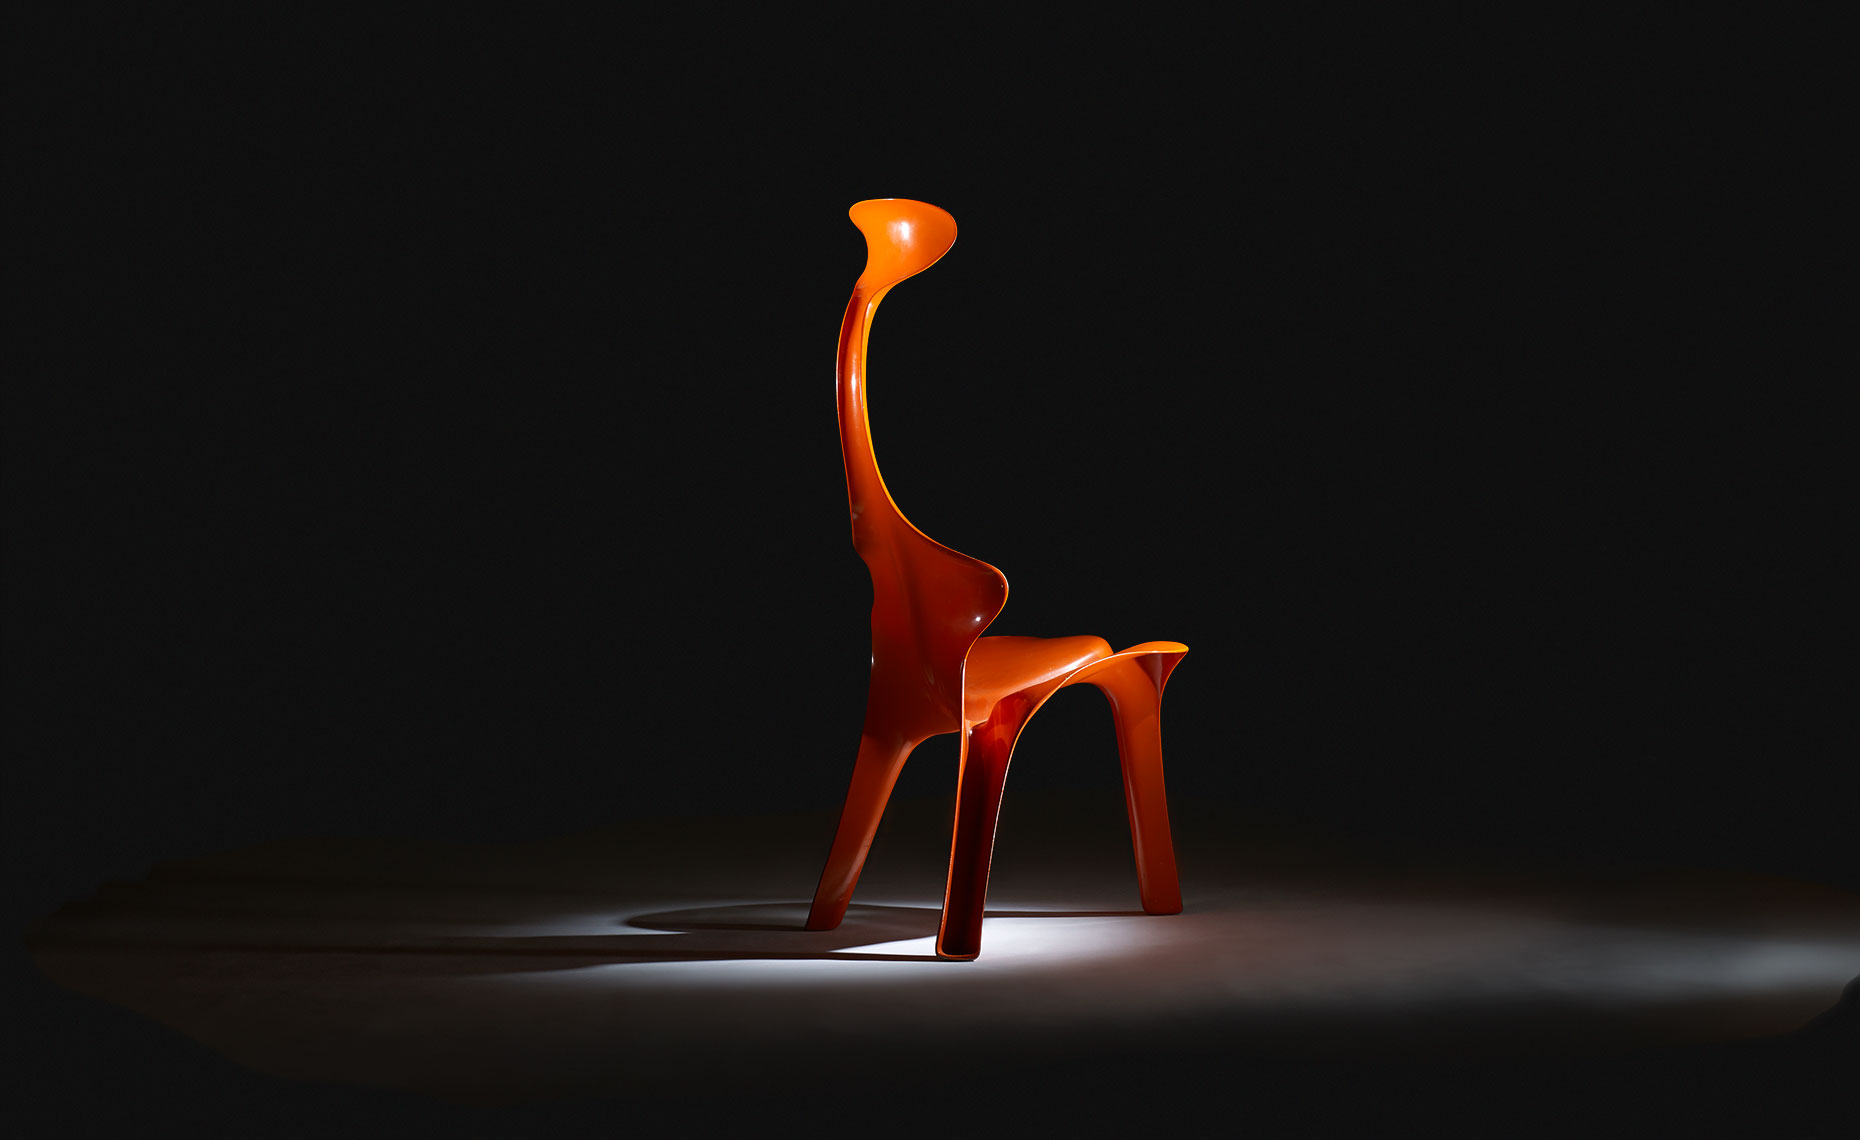 Ross Floyd - Orange Chair